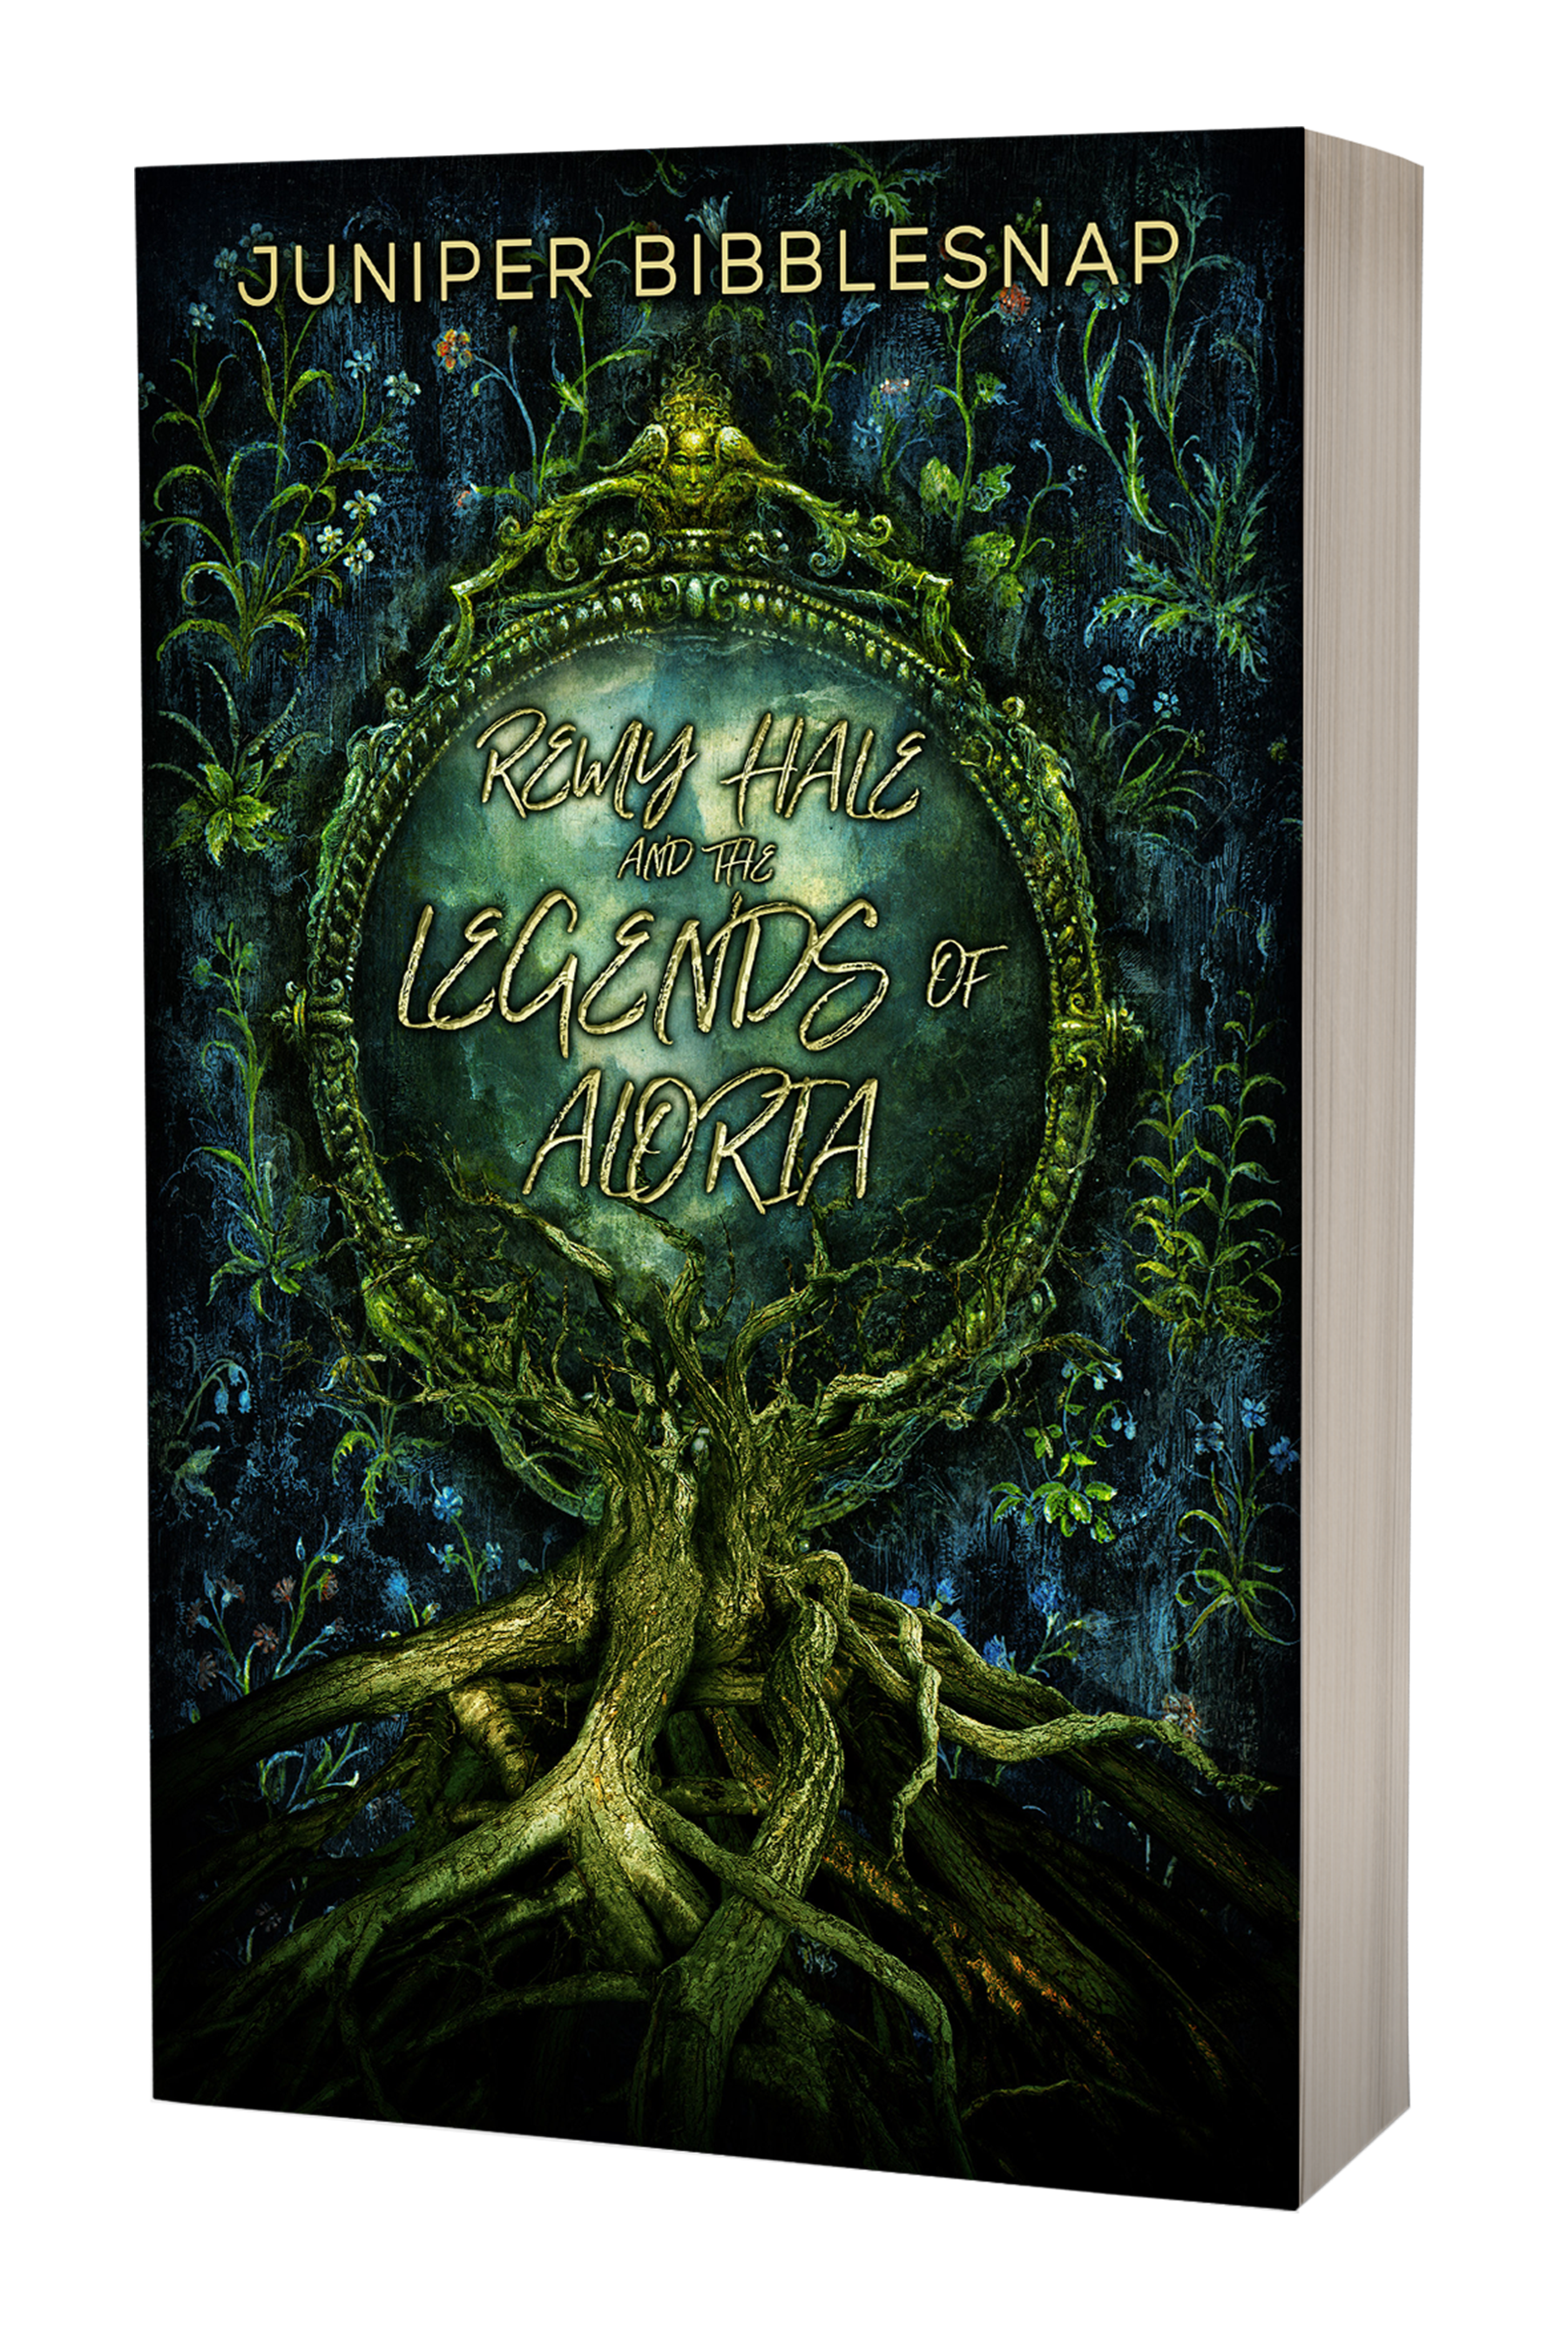 REMY HALE AND THE LEGENDS OF ALORIA